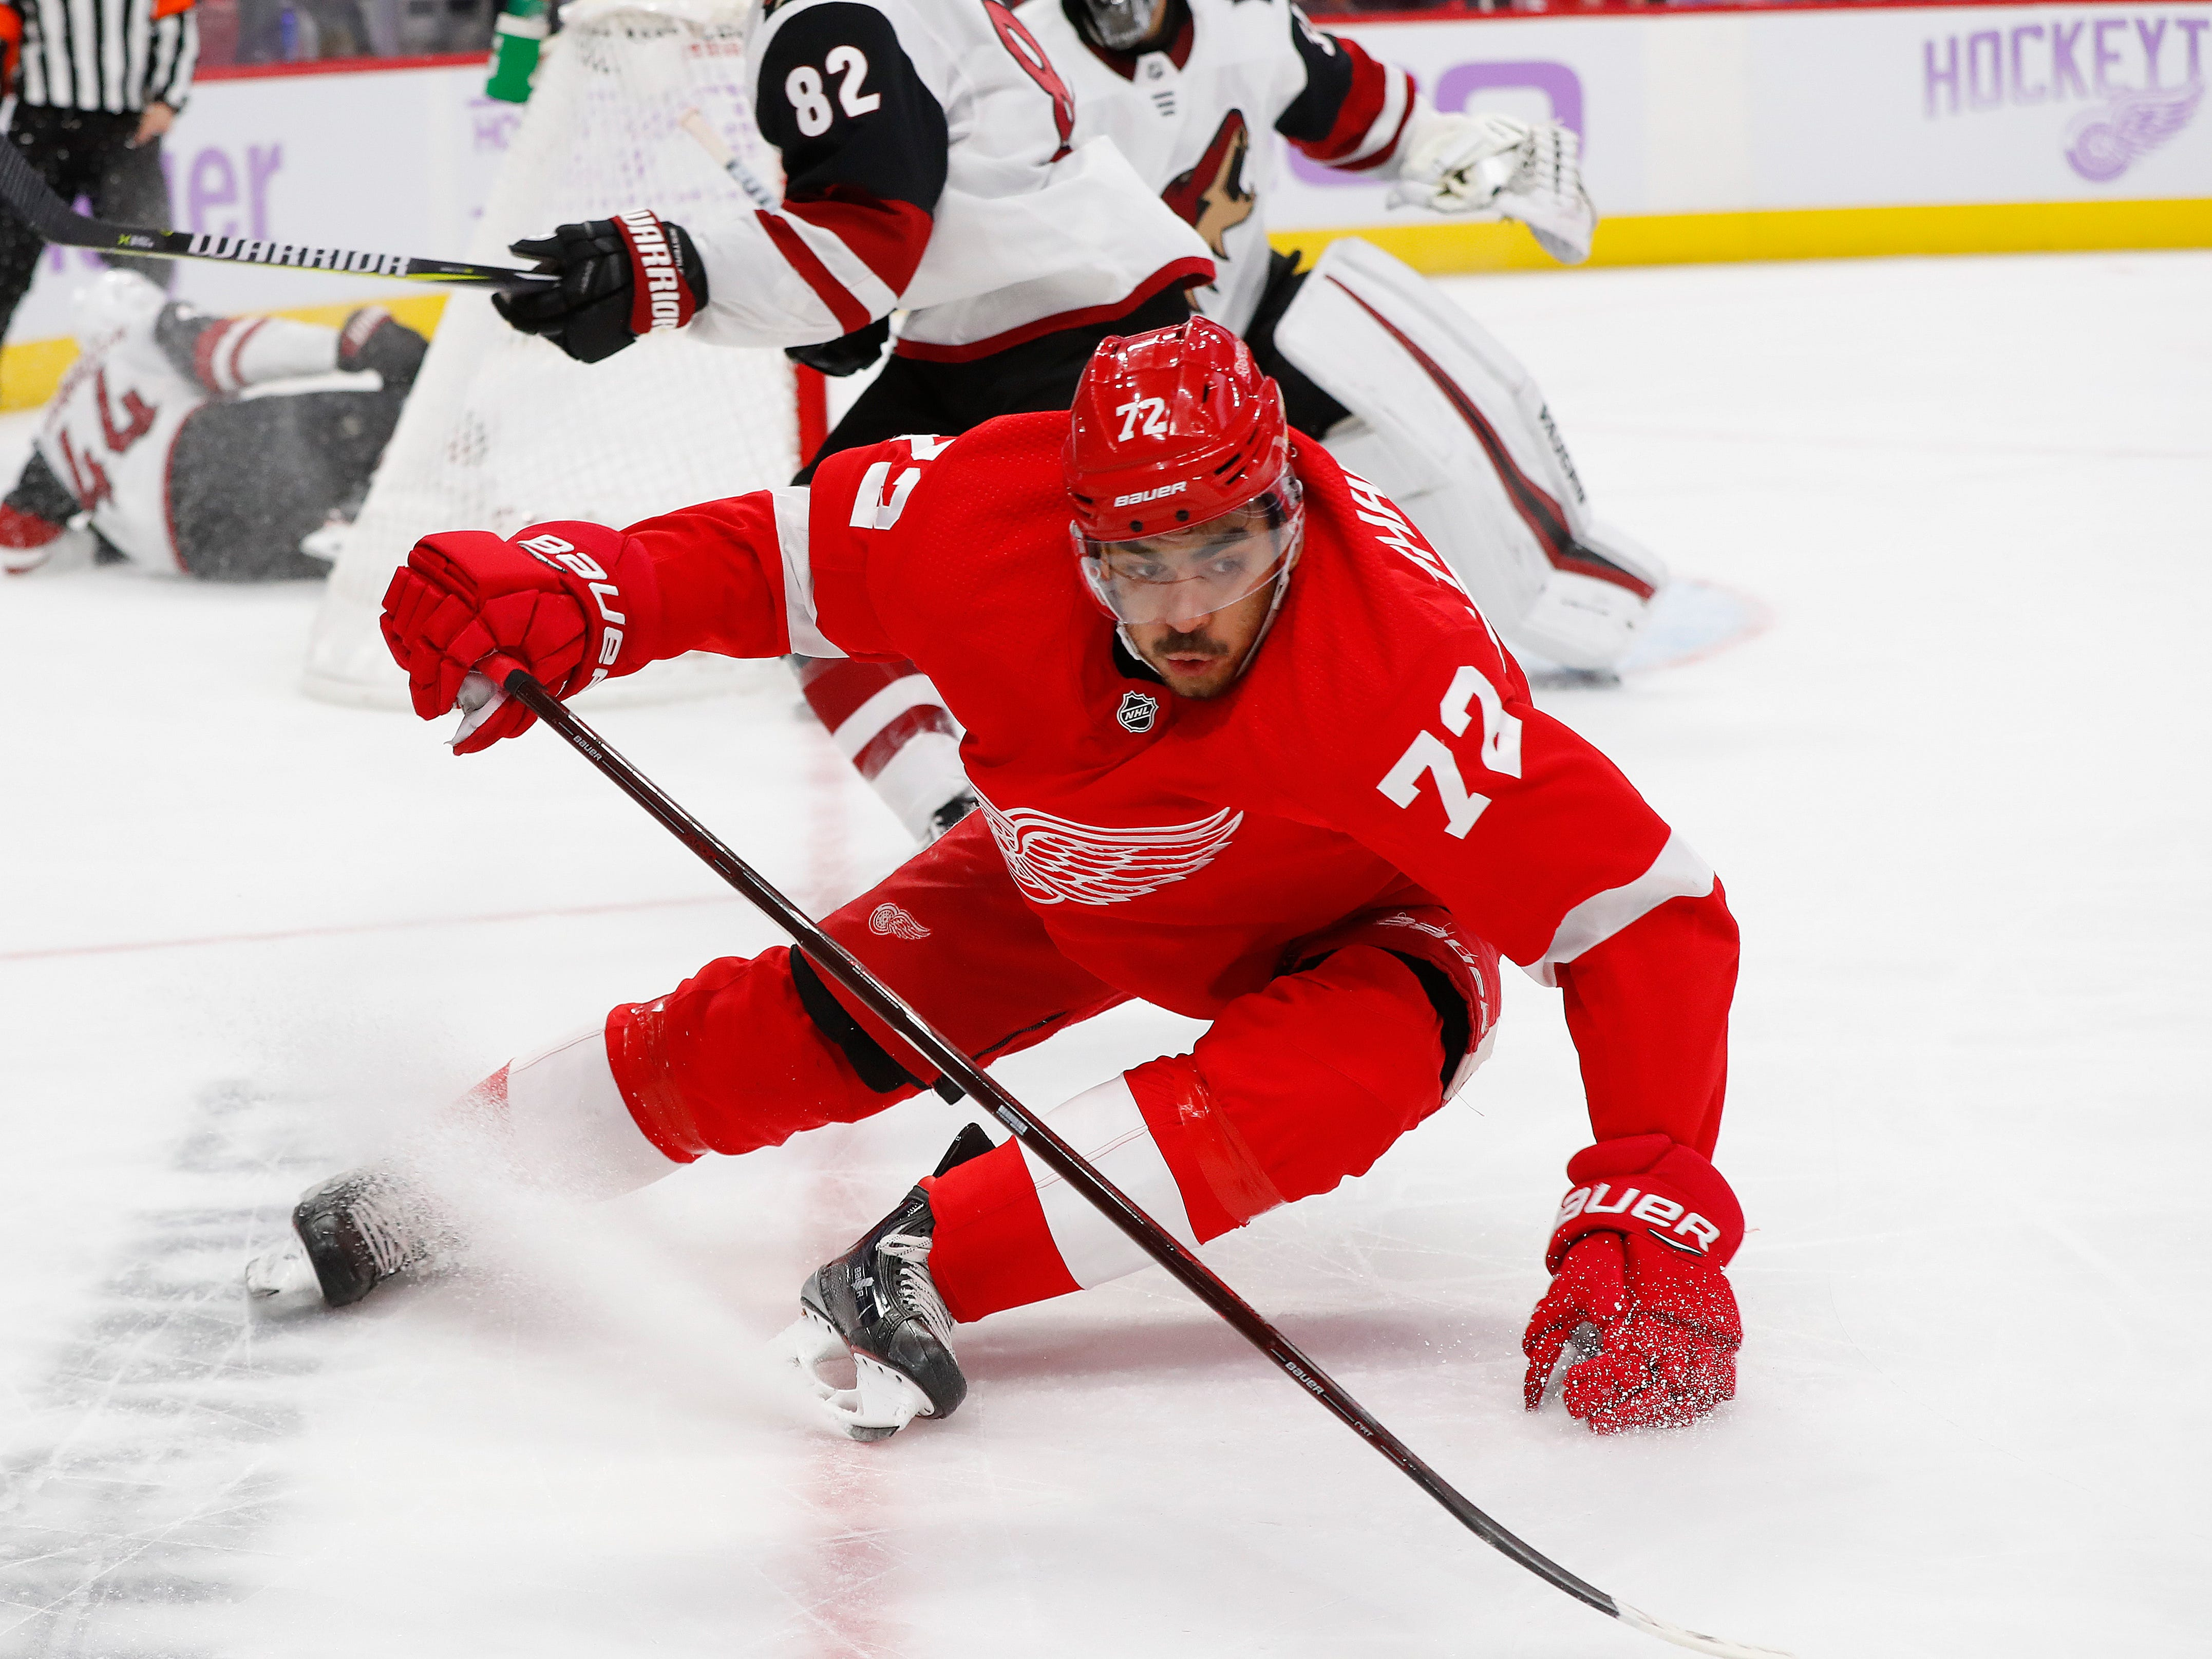 Detroit Red Wings center Andreas Athanasiou (72) skates against the Arizona Coyotes in the second period of an NHL hockey game Tuesday, Nov. 13, 2018, in Detroit.